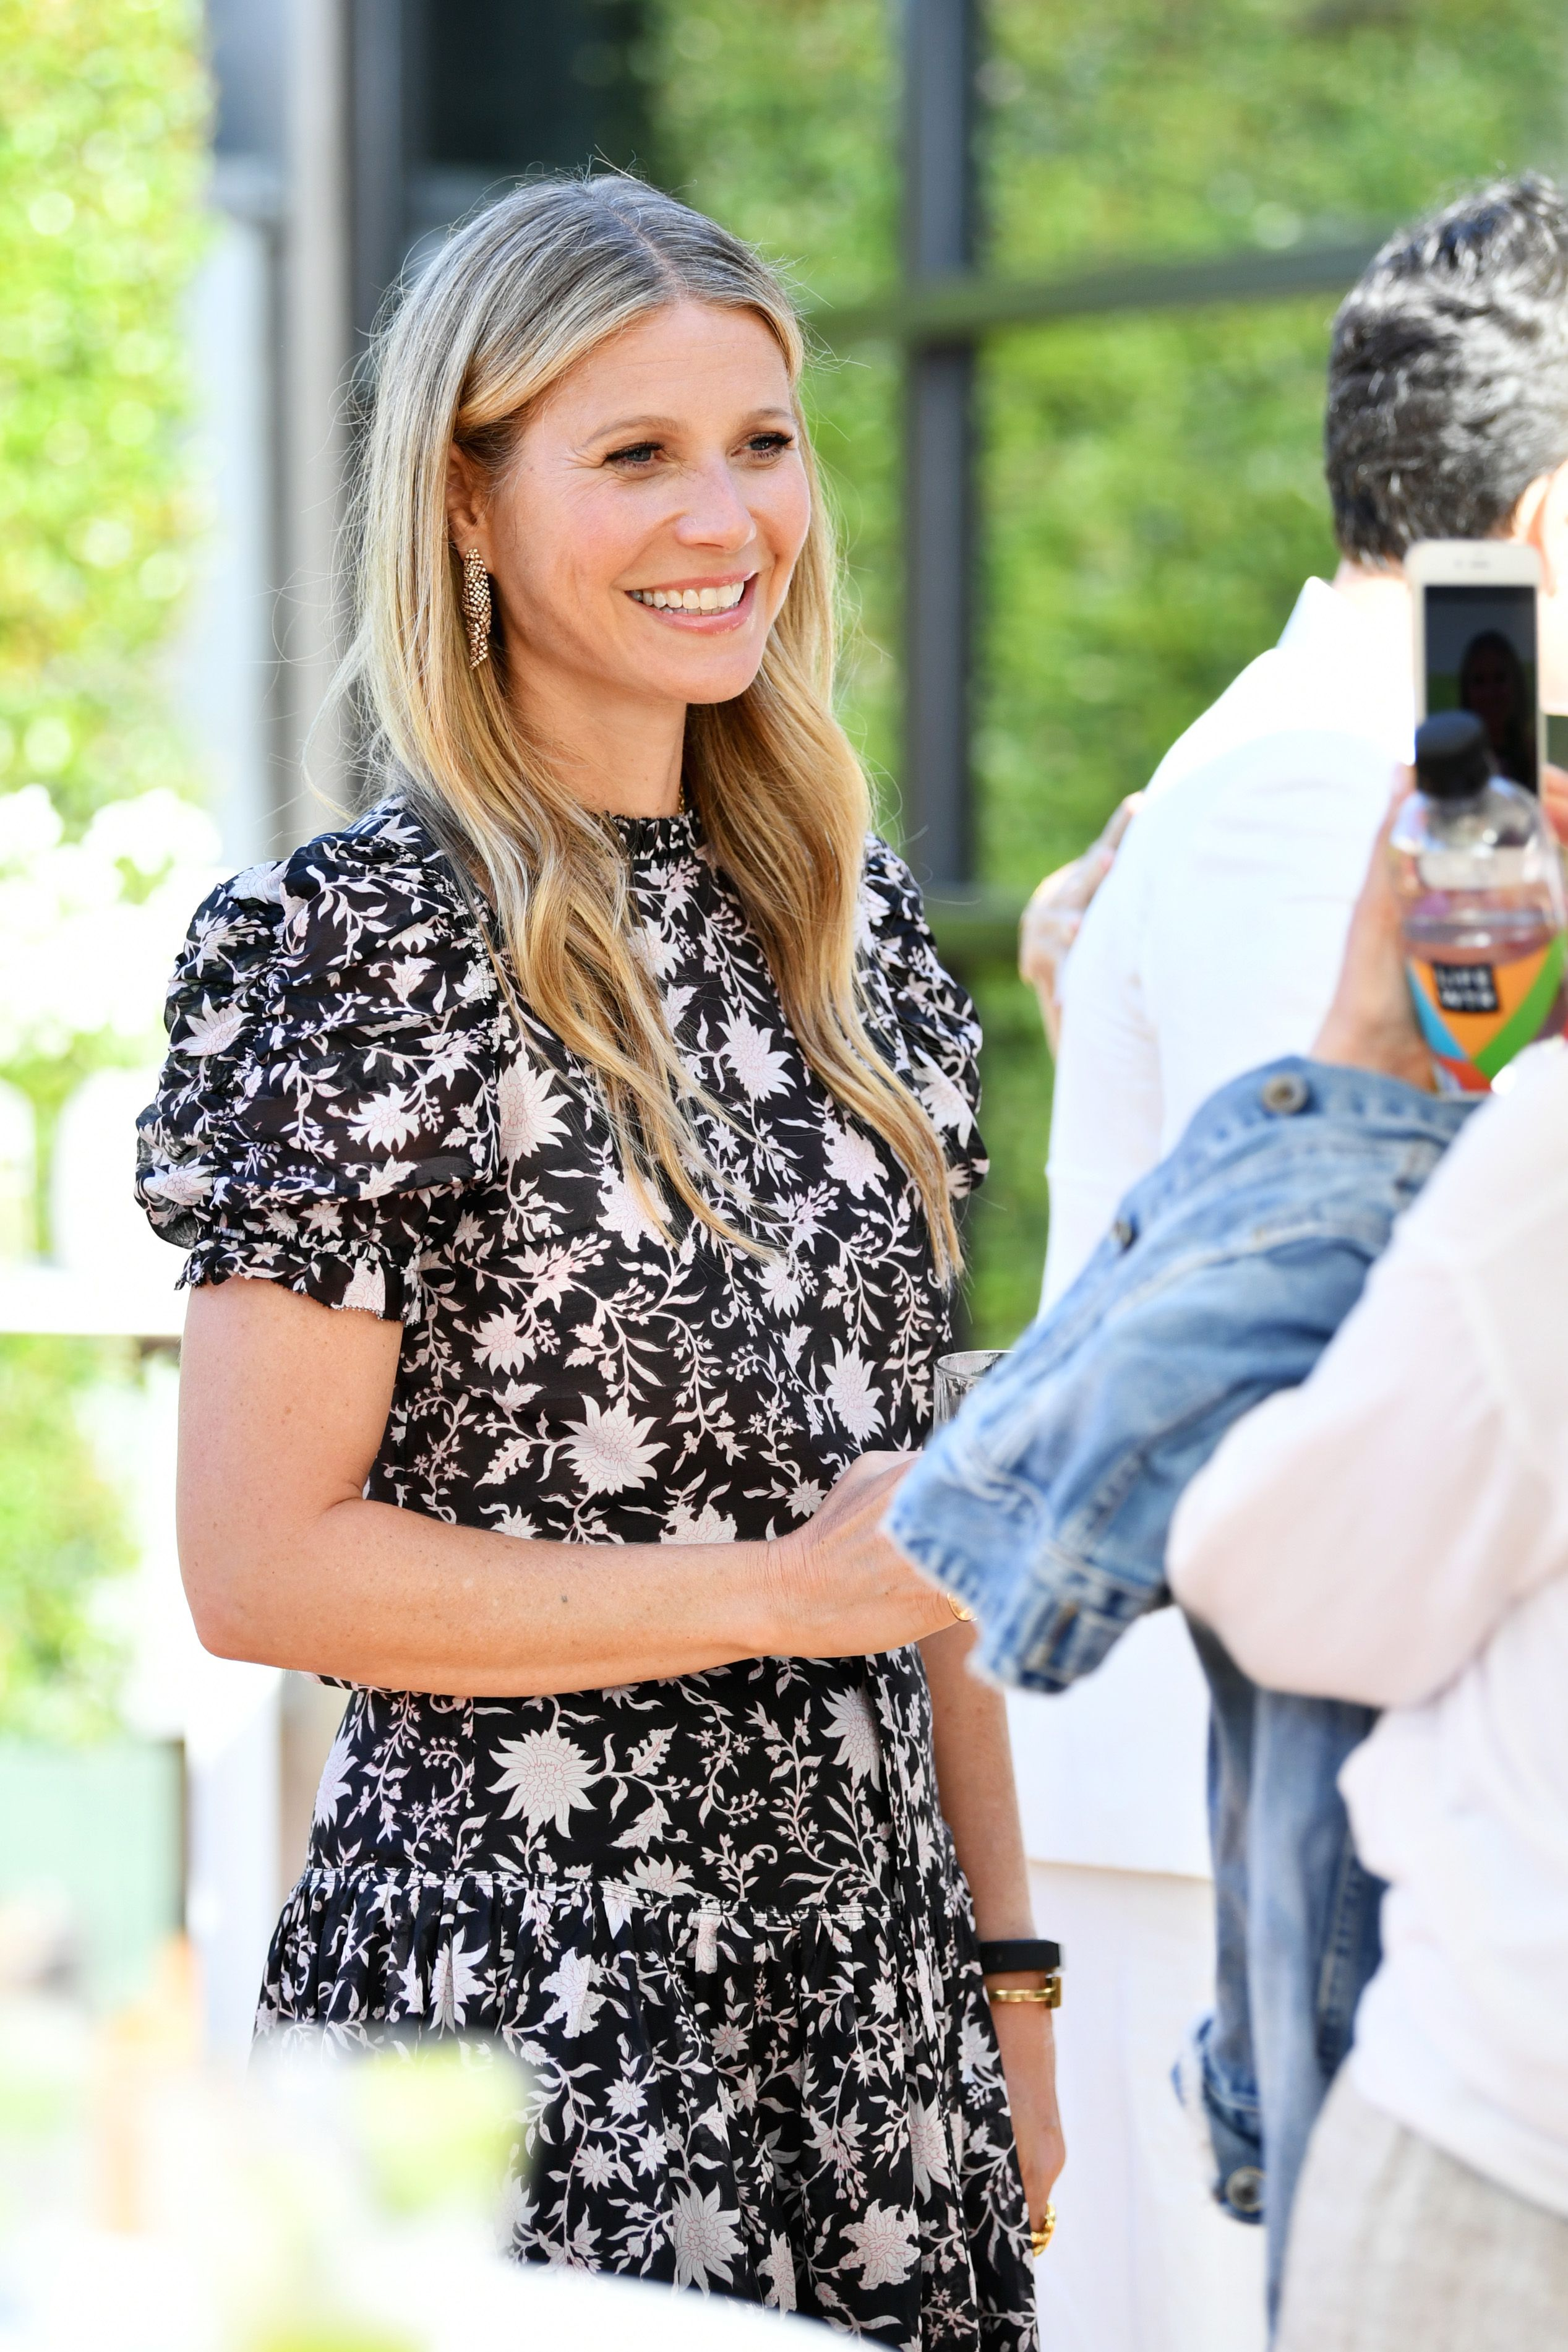 Gwyneth Paltrow And Daughter Apple Martin Look Like Twins In Instagram Photo